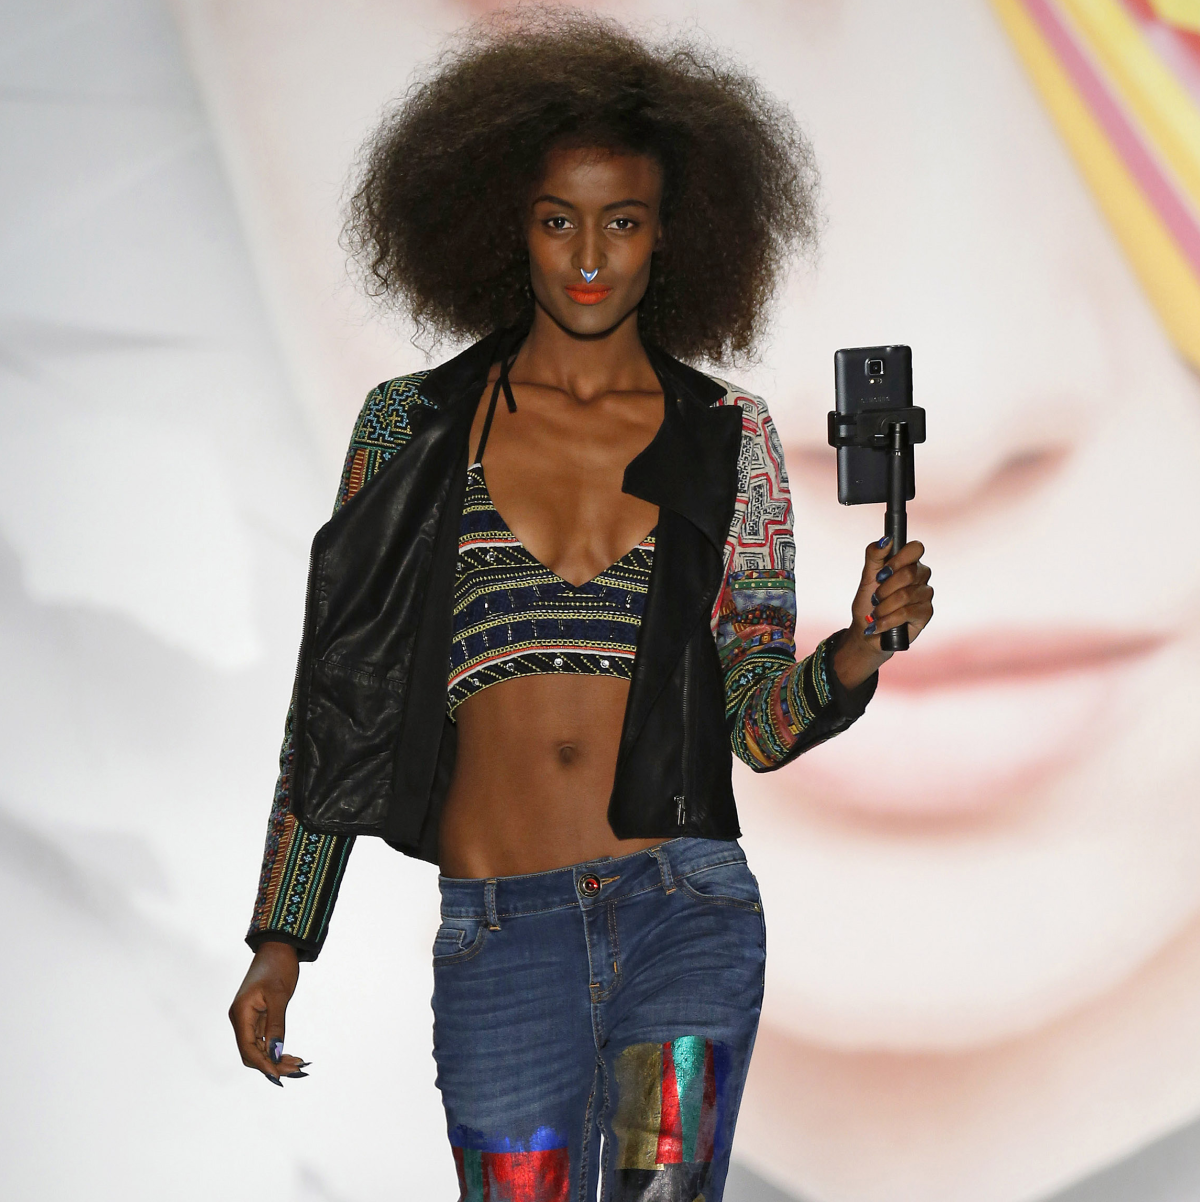 82555d1414a Colorful fashion brand invades Houston airports with a Barcelona ...